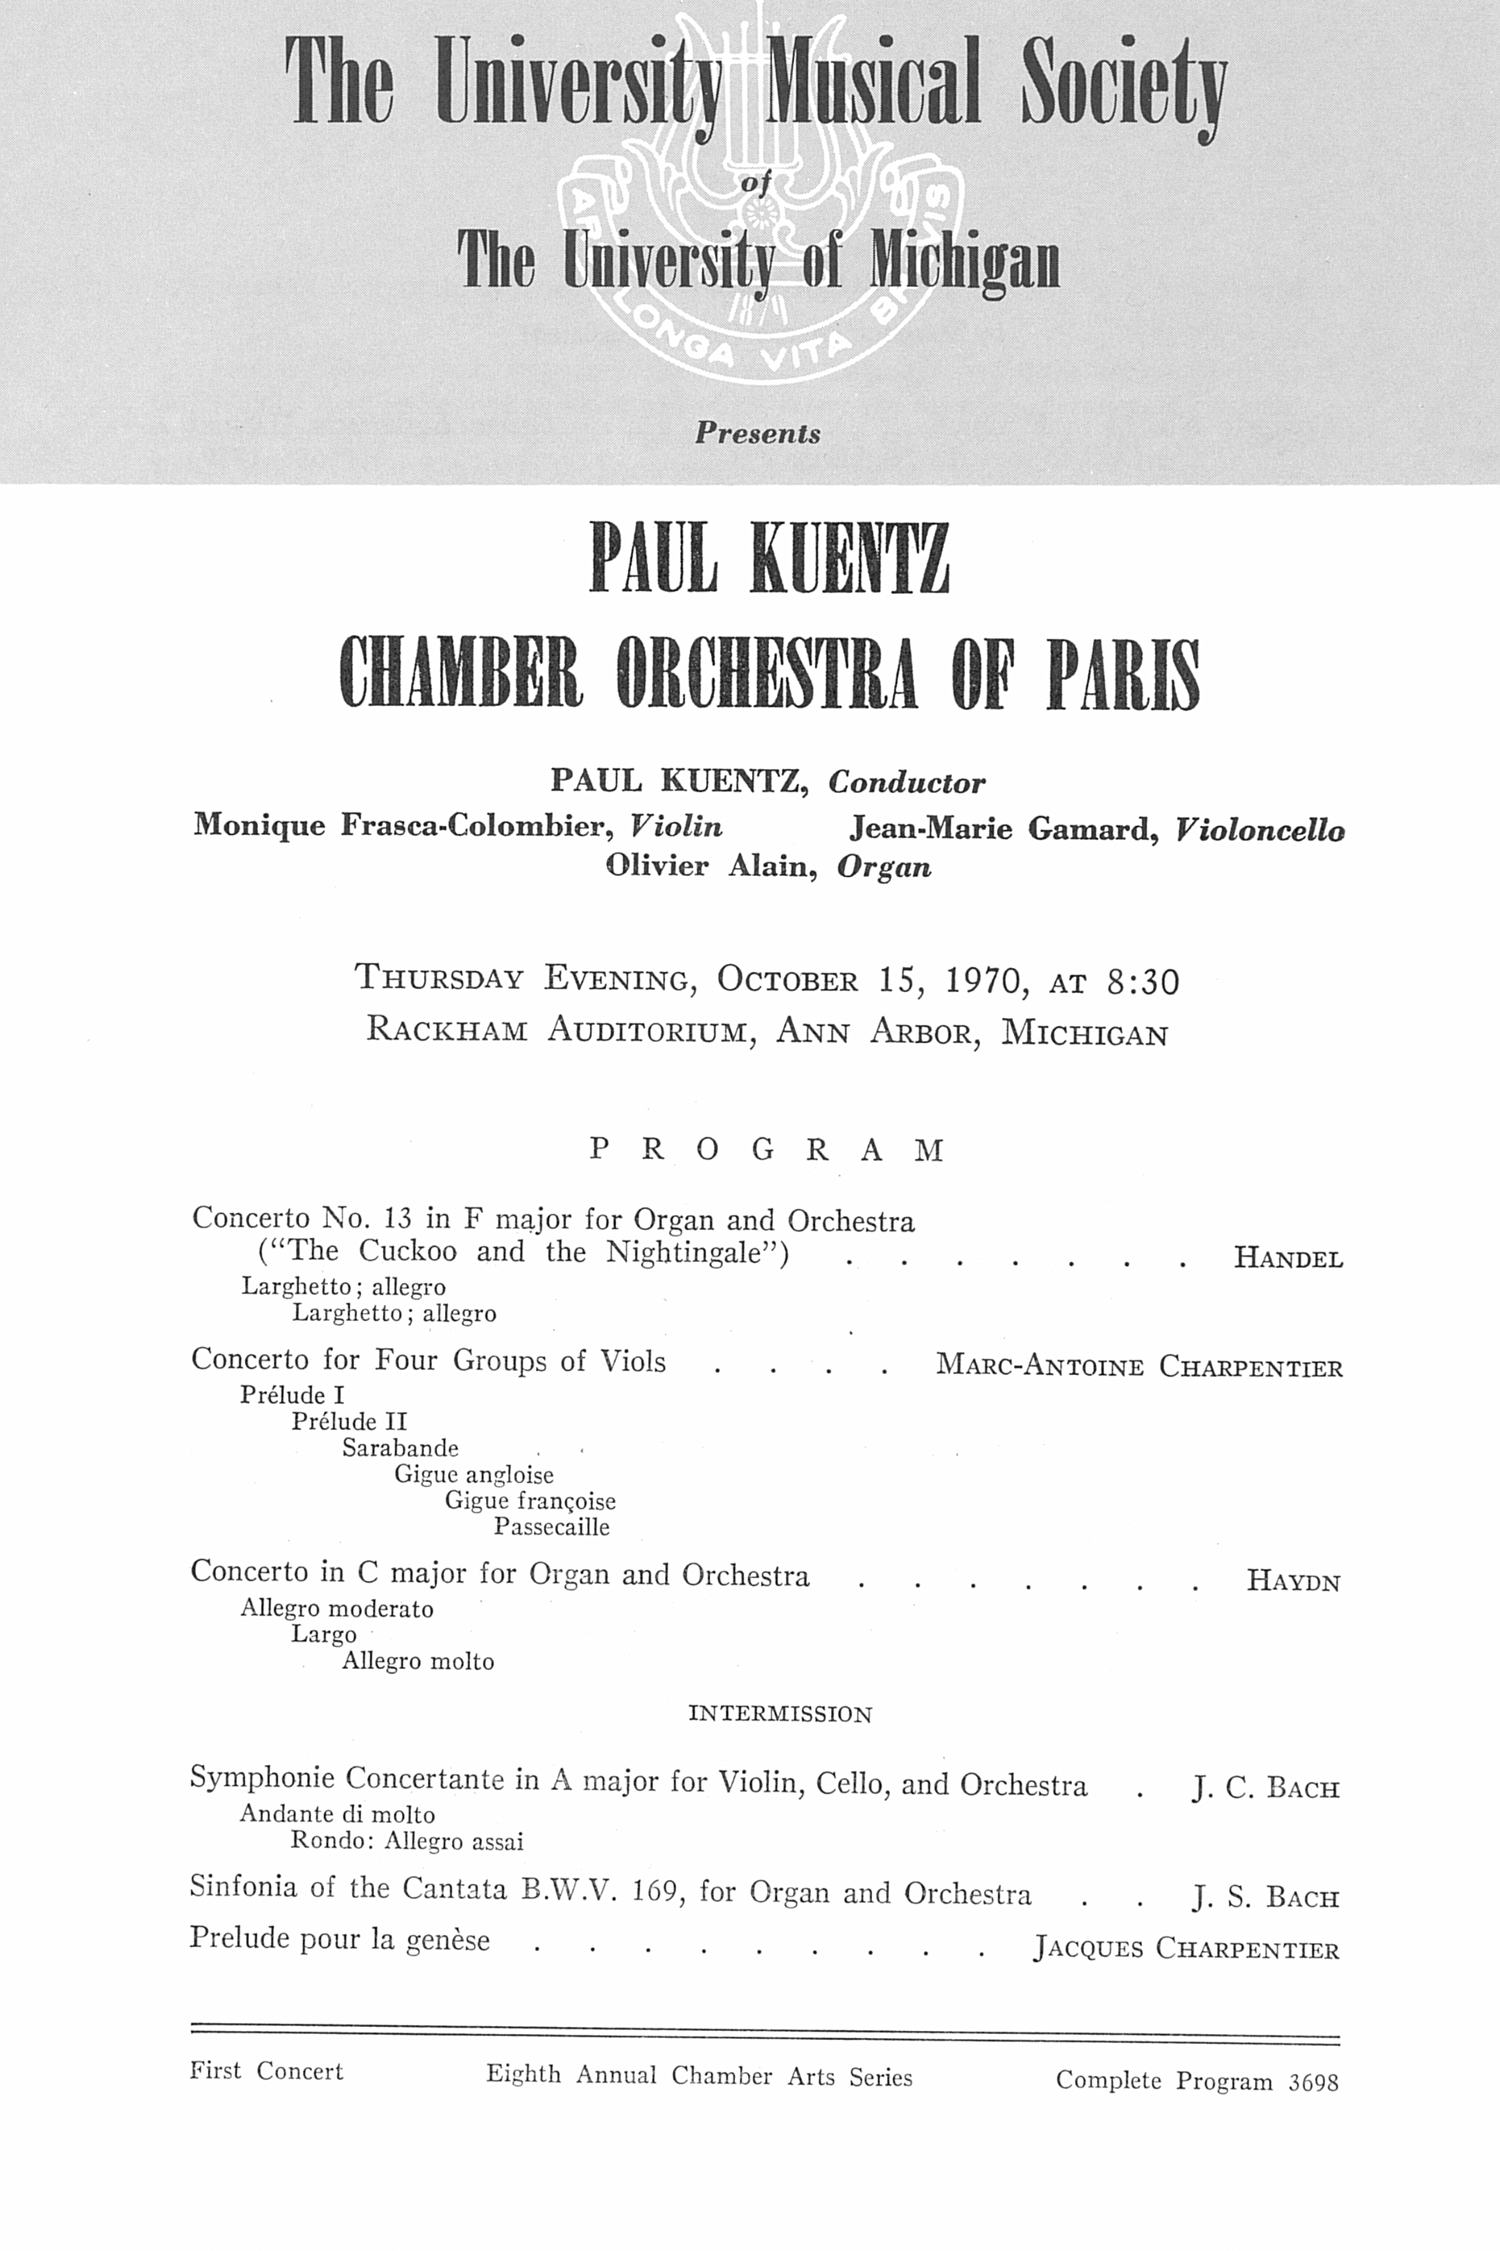 UMS Concert Program, October 15, 1970: Paul Kuentz Chamber Orchestra Of Paris -- Paul Kuentz image